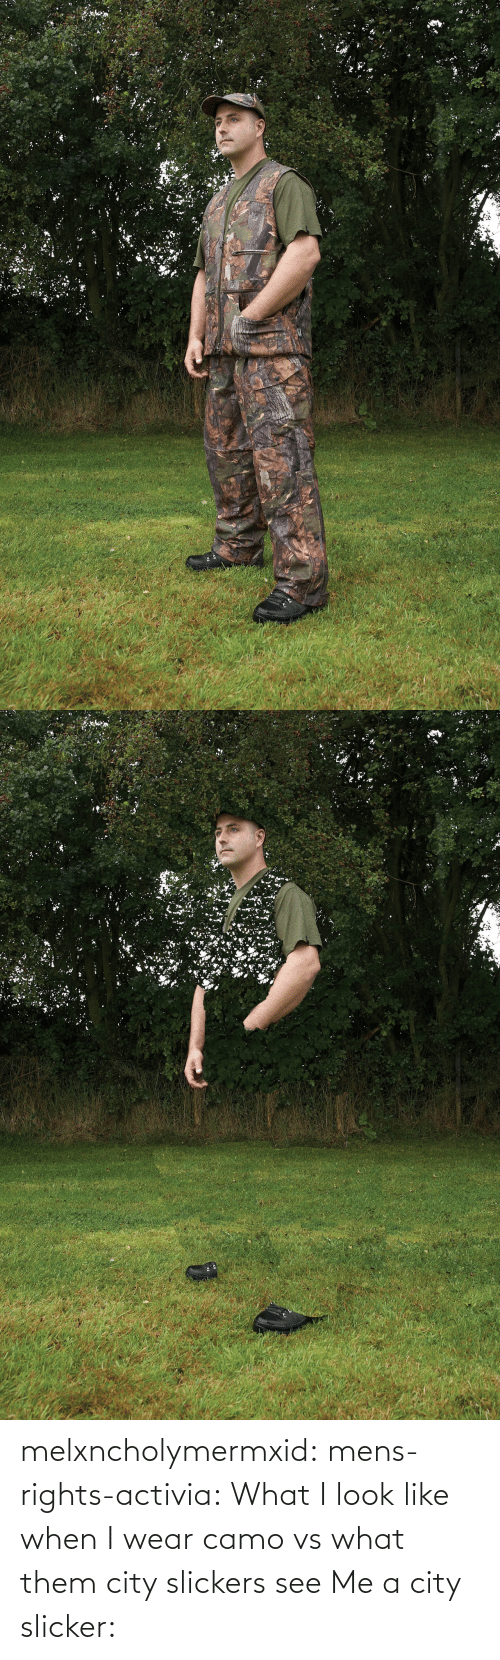 full: melxncholymermxid: mens-rights-activia:  What I look like when I wear camo vs what them city slickers see   Me a city slicker: